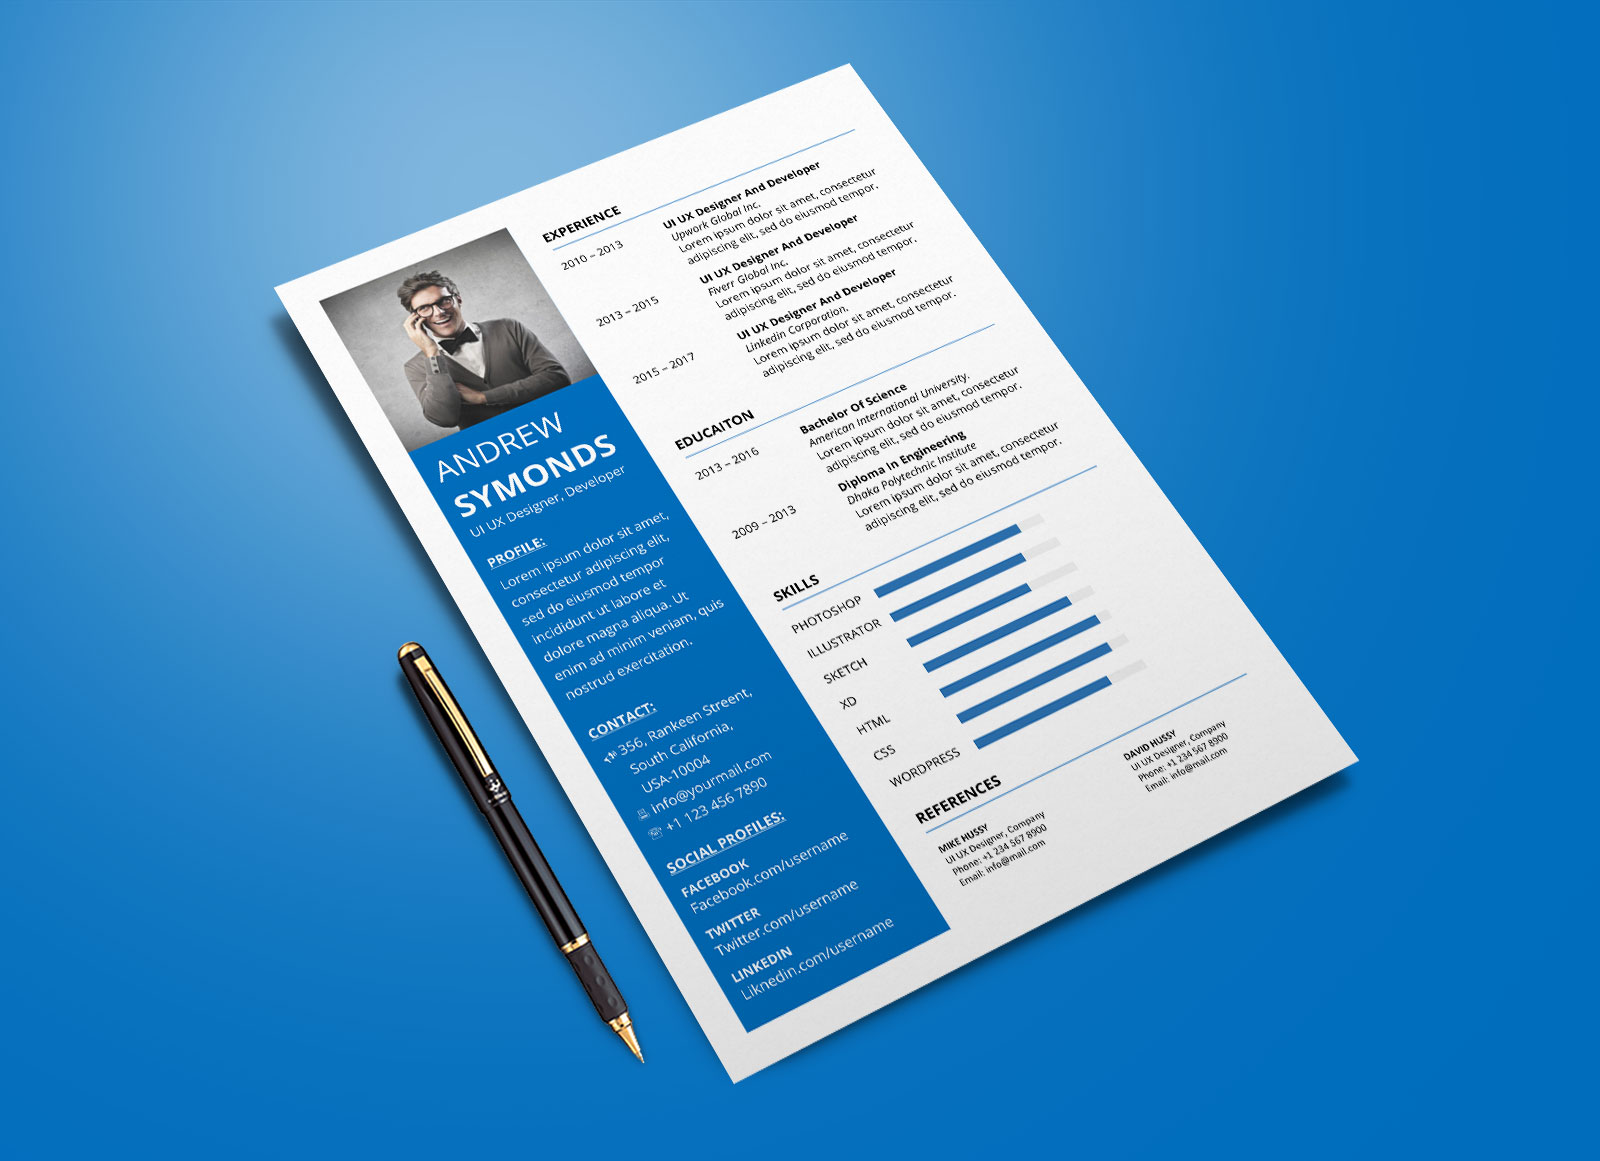 free modern resume template in word format good contemporary templates expanded functions Resume Contemporary Resume Templates Free Word